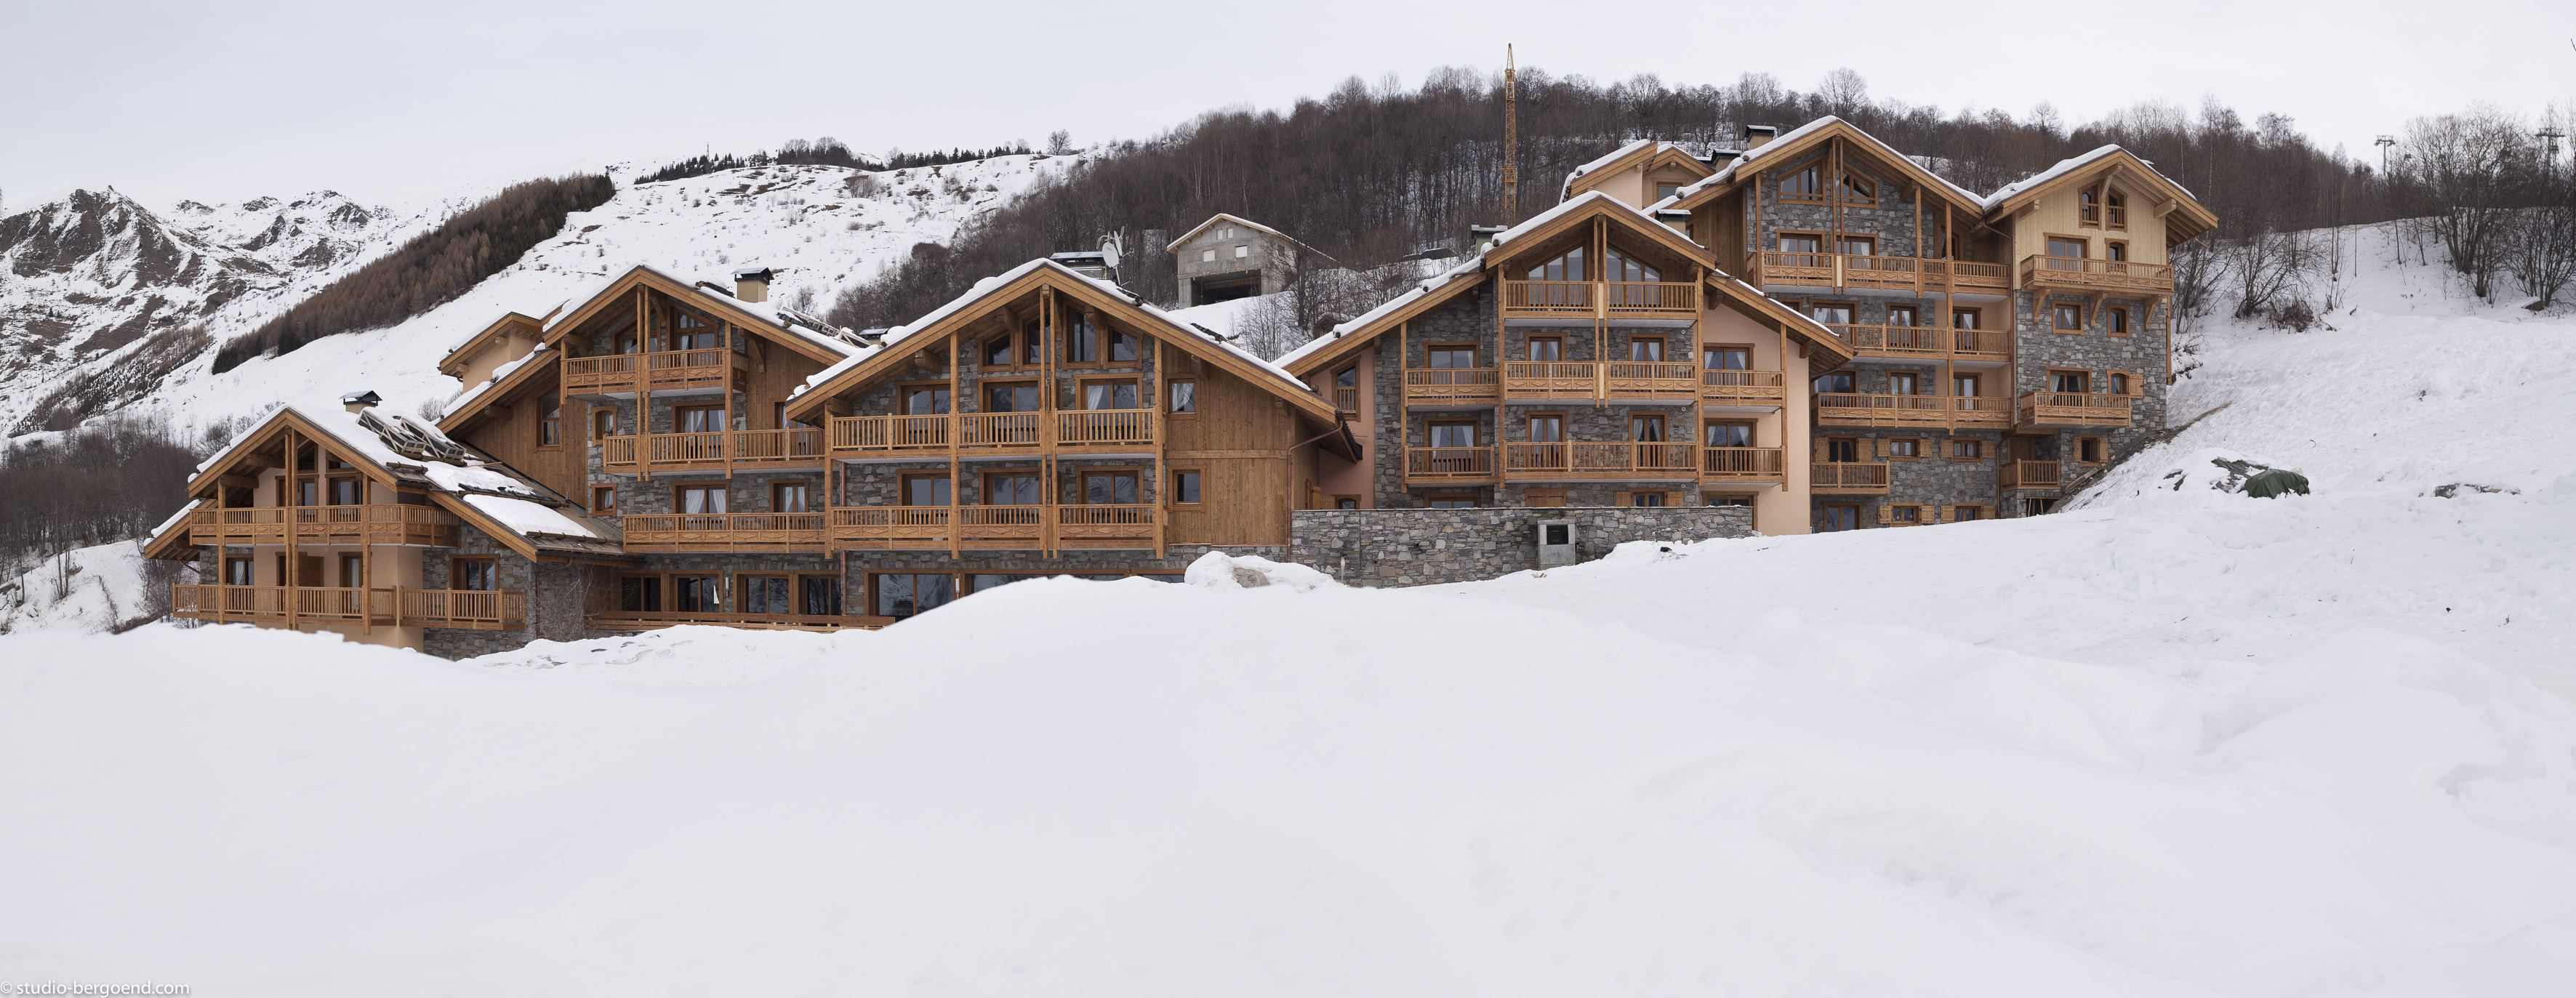 "Residence ski-in ski-out / Résidence & Spa LES CHALETS DU GYPSE (4,5 Snowflakes ""Gold"")"